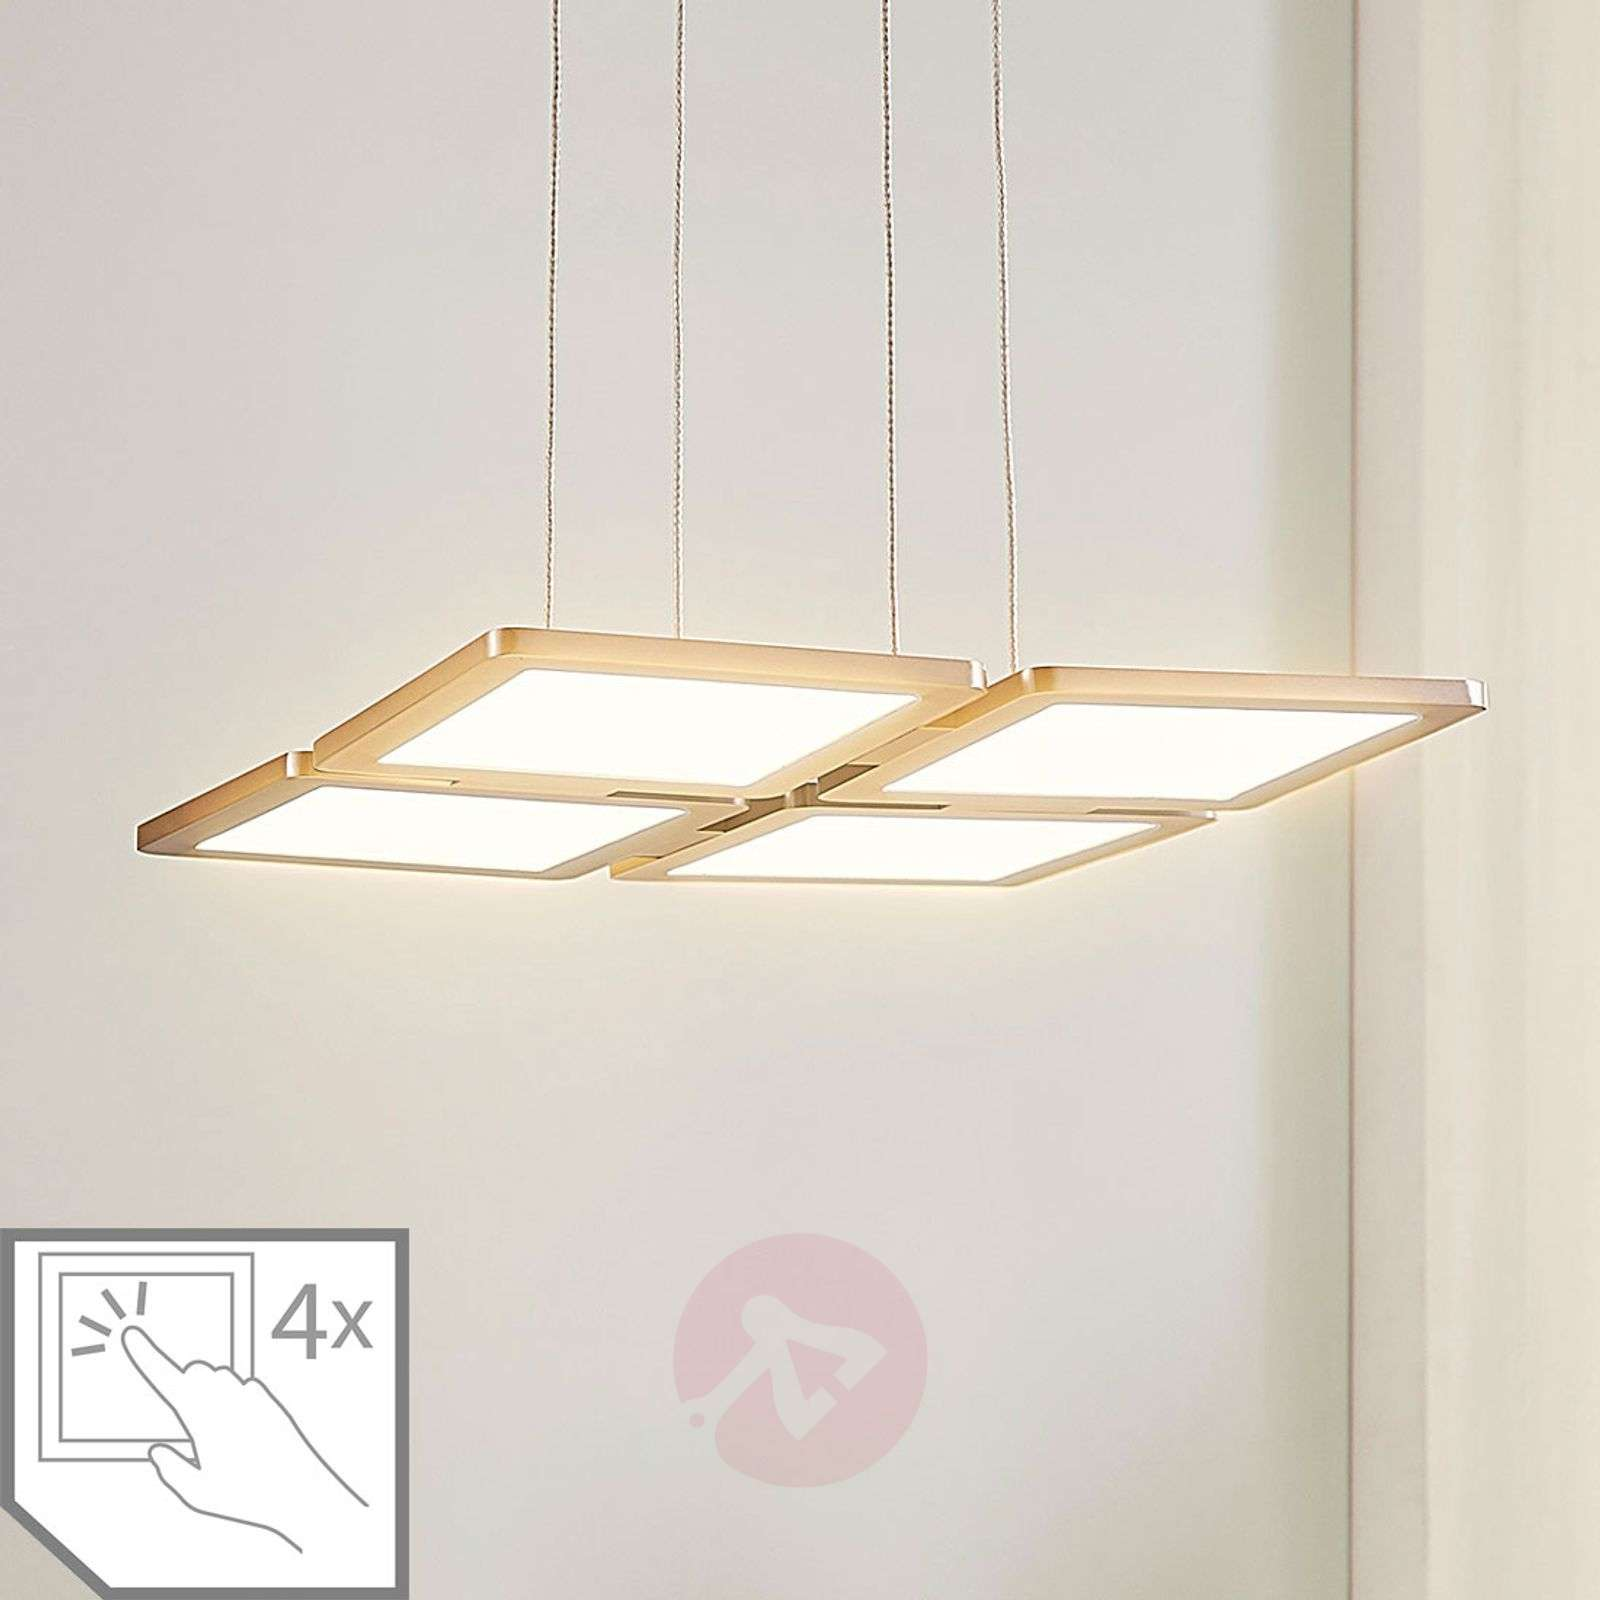 Suspension LED dimmable Elian-9621434-01